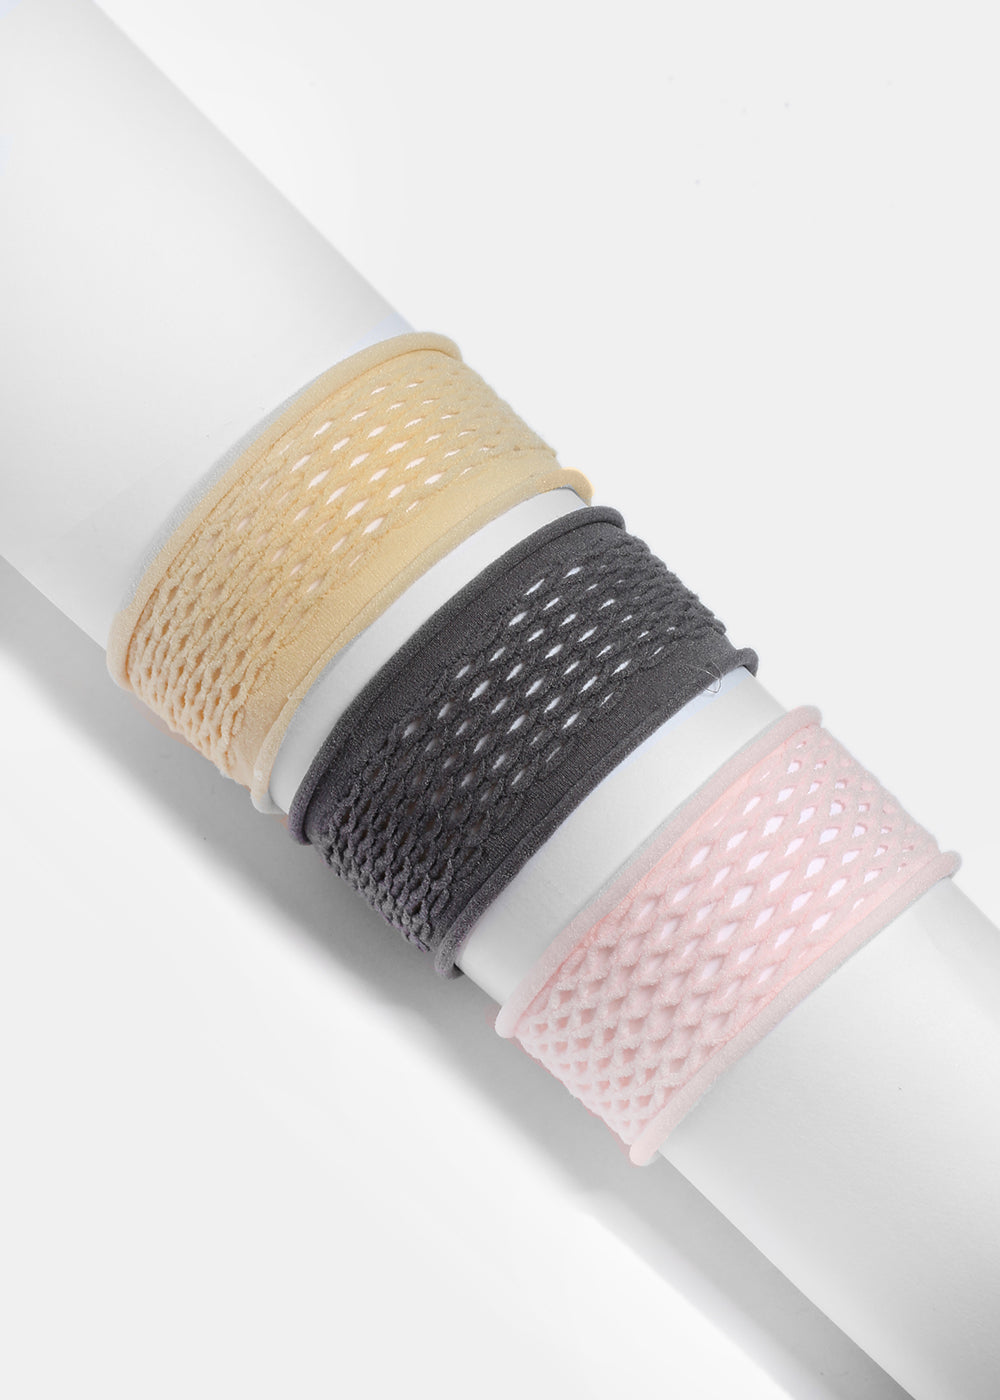 3 Piece Fishnet Hair Tie Set